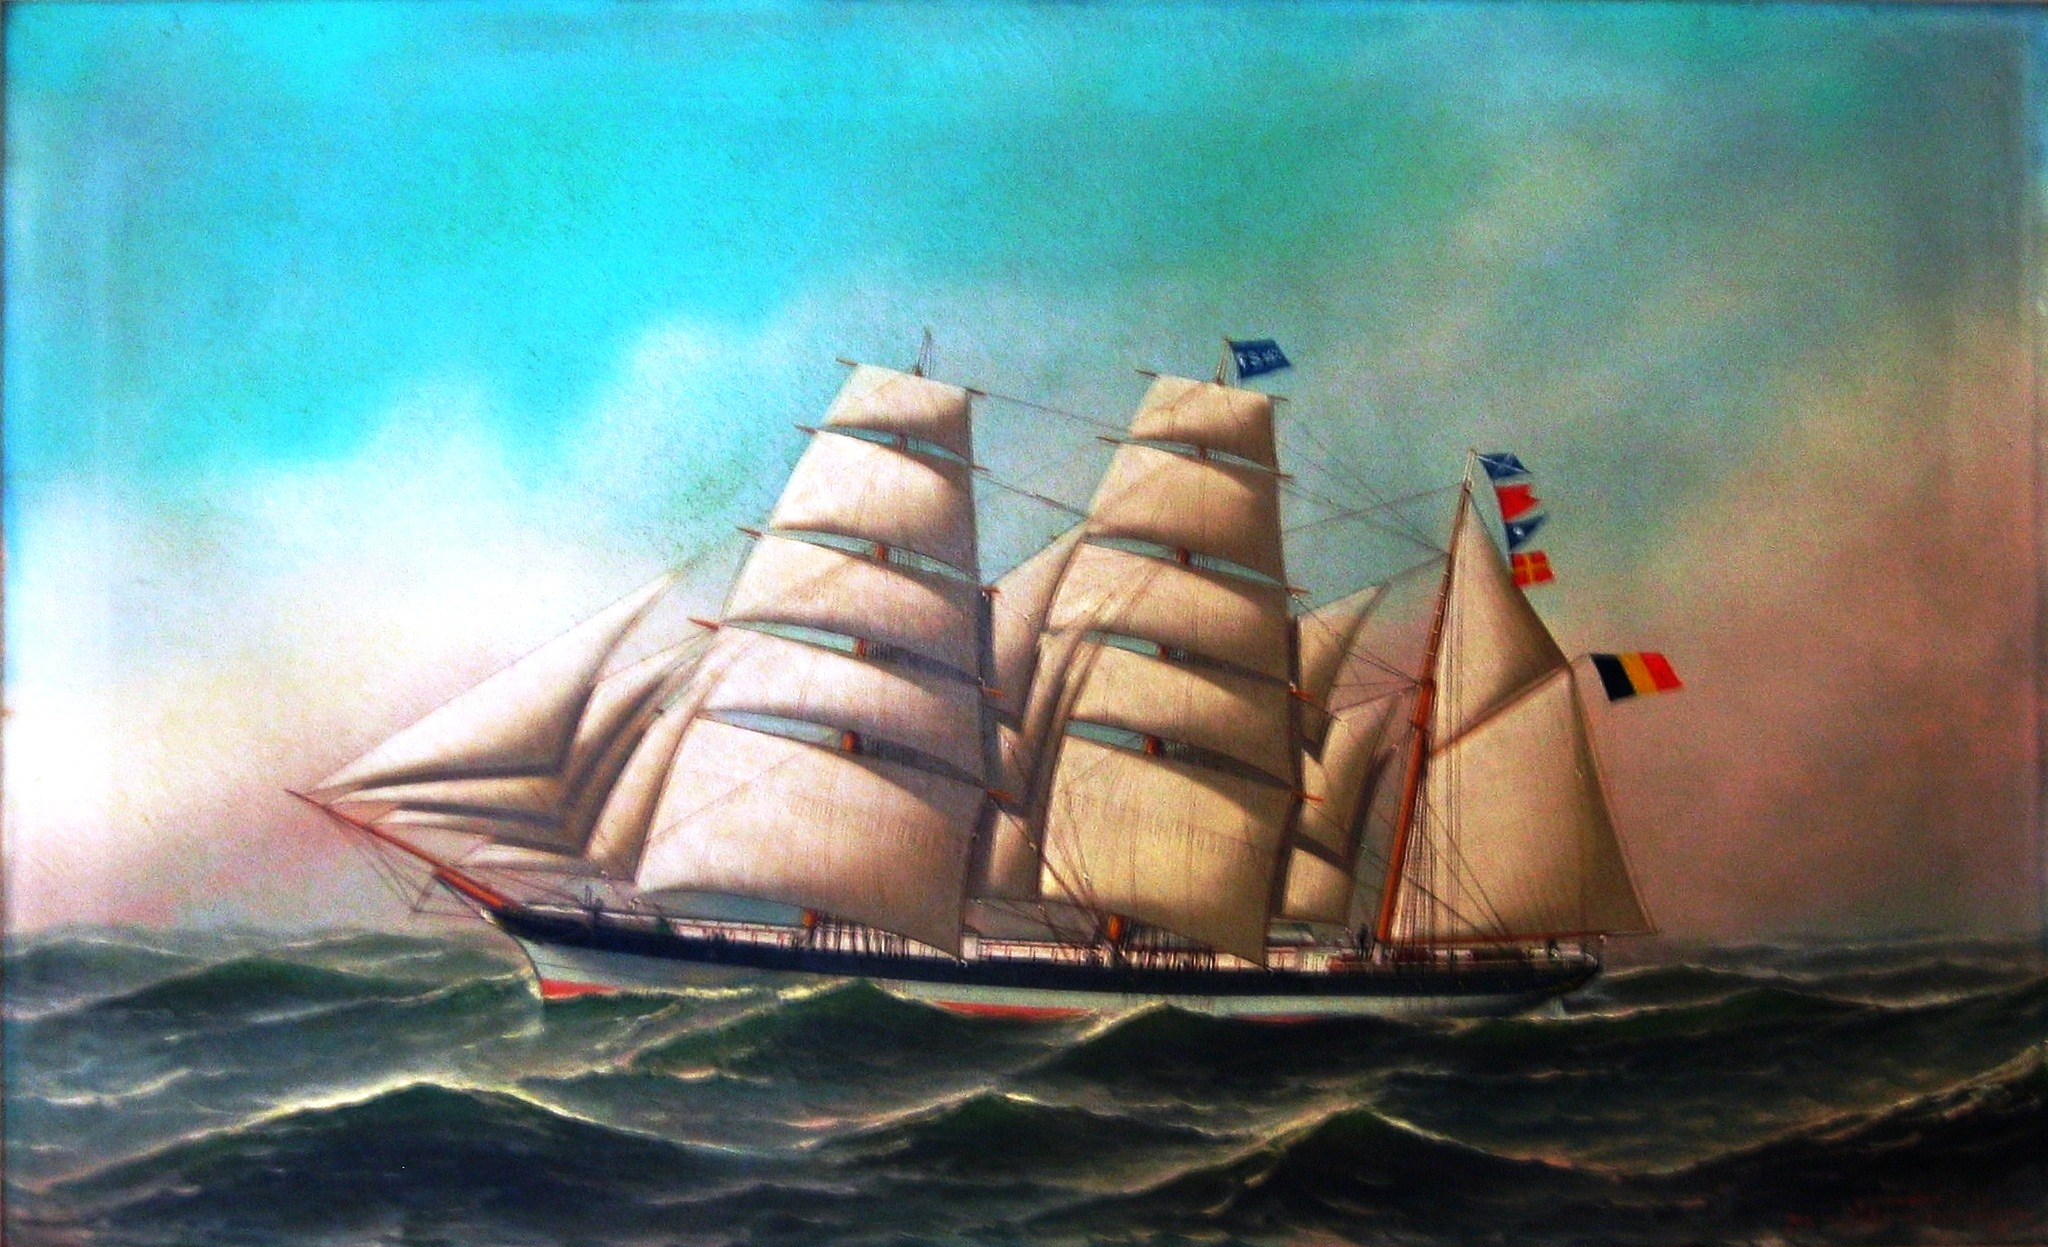 """Zeilschip Brabant"" (1888), oil painting on canvas signed by the renowned Danish / U.S. artist Antonio Jacobsen (1850-1921).  The authenticity of this 'museum piece' and six other works was established by Galerie Beaumont in April 2009."